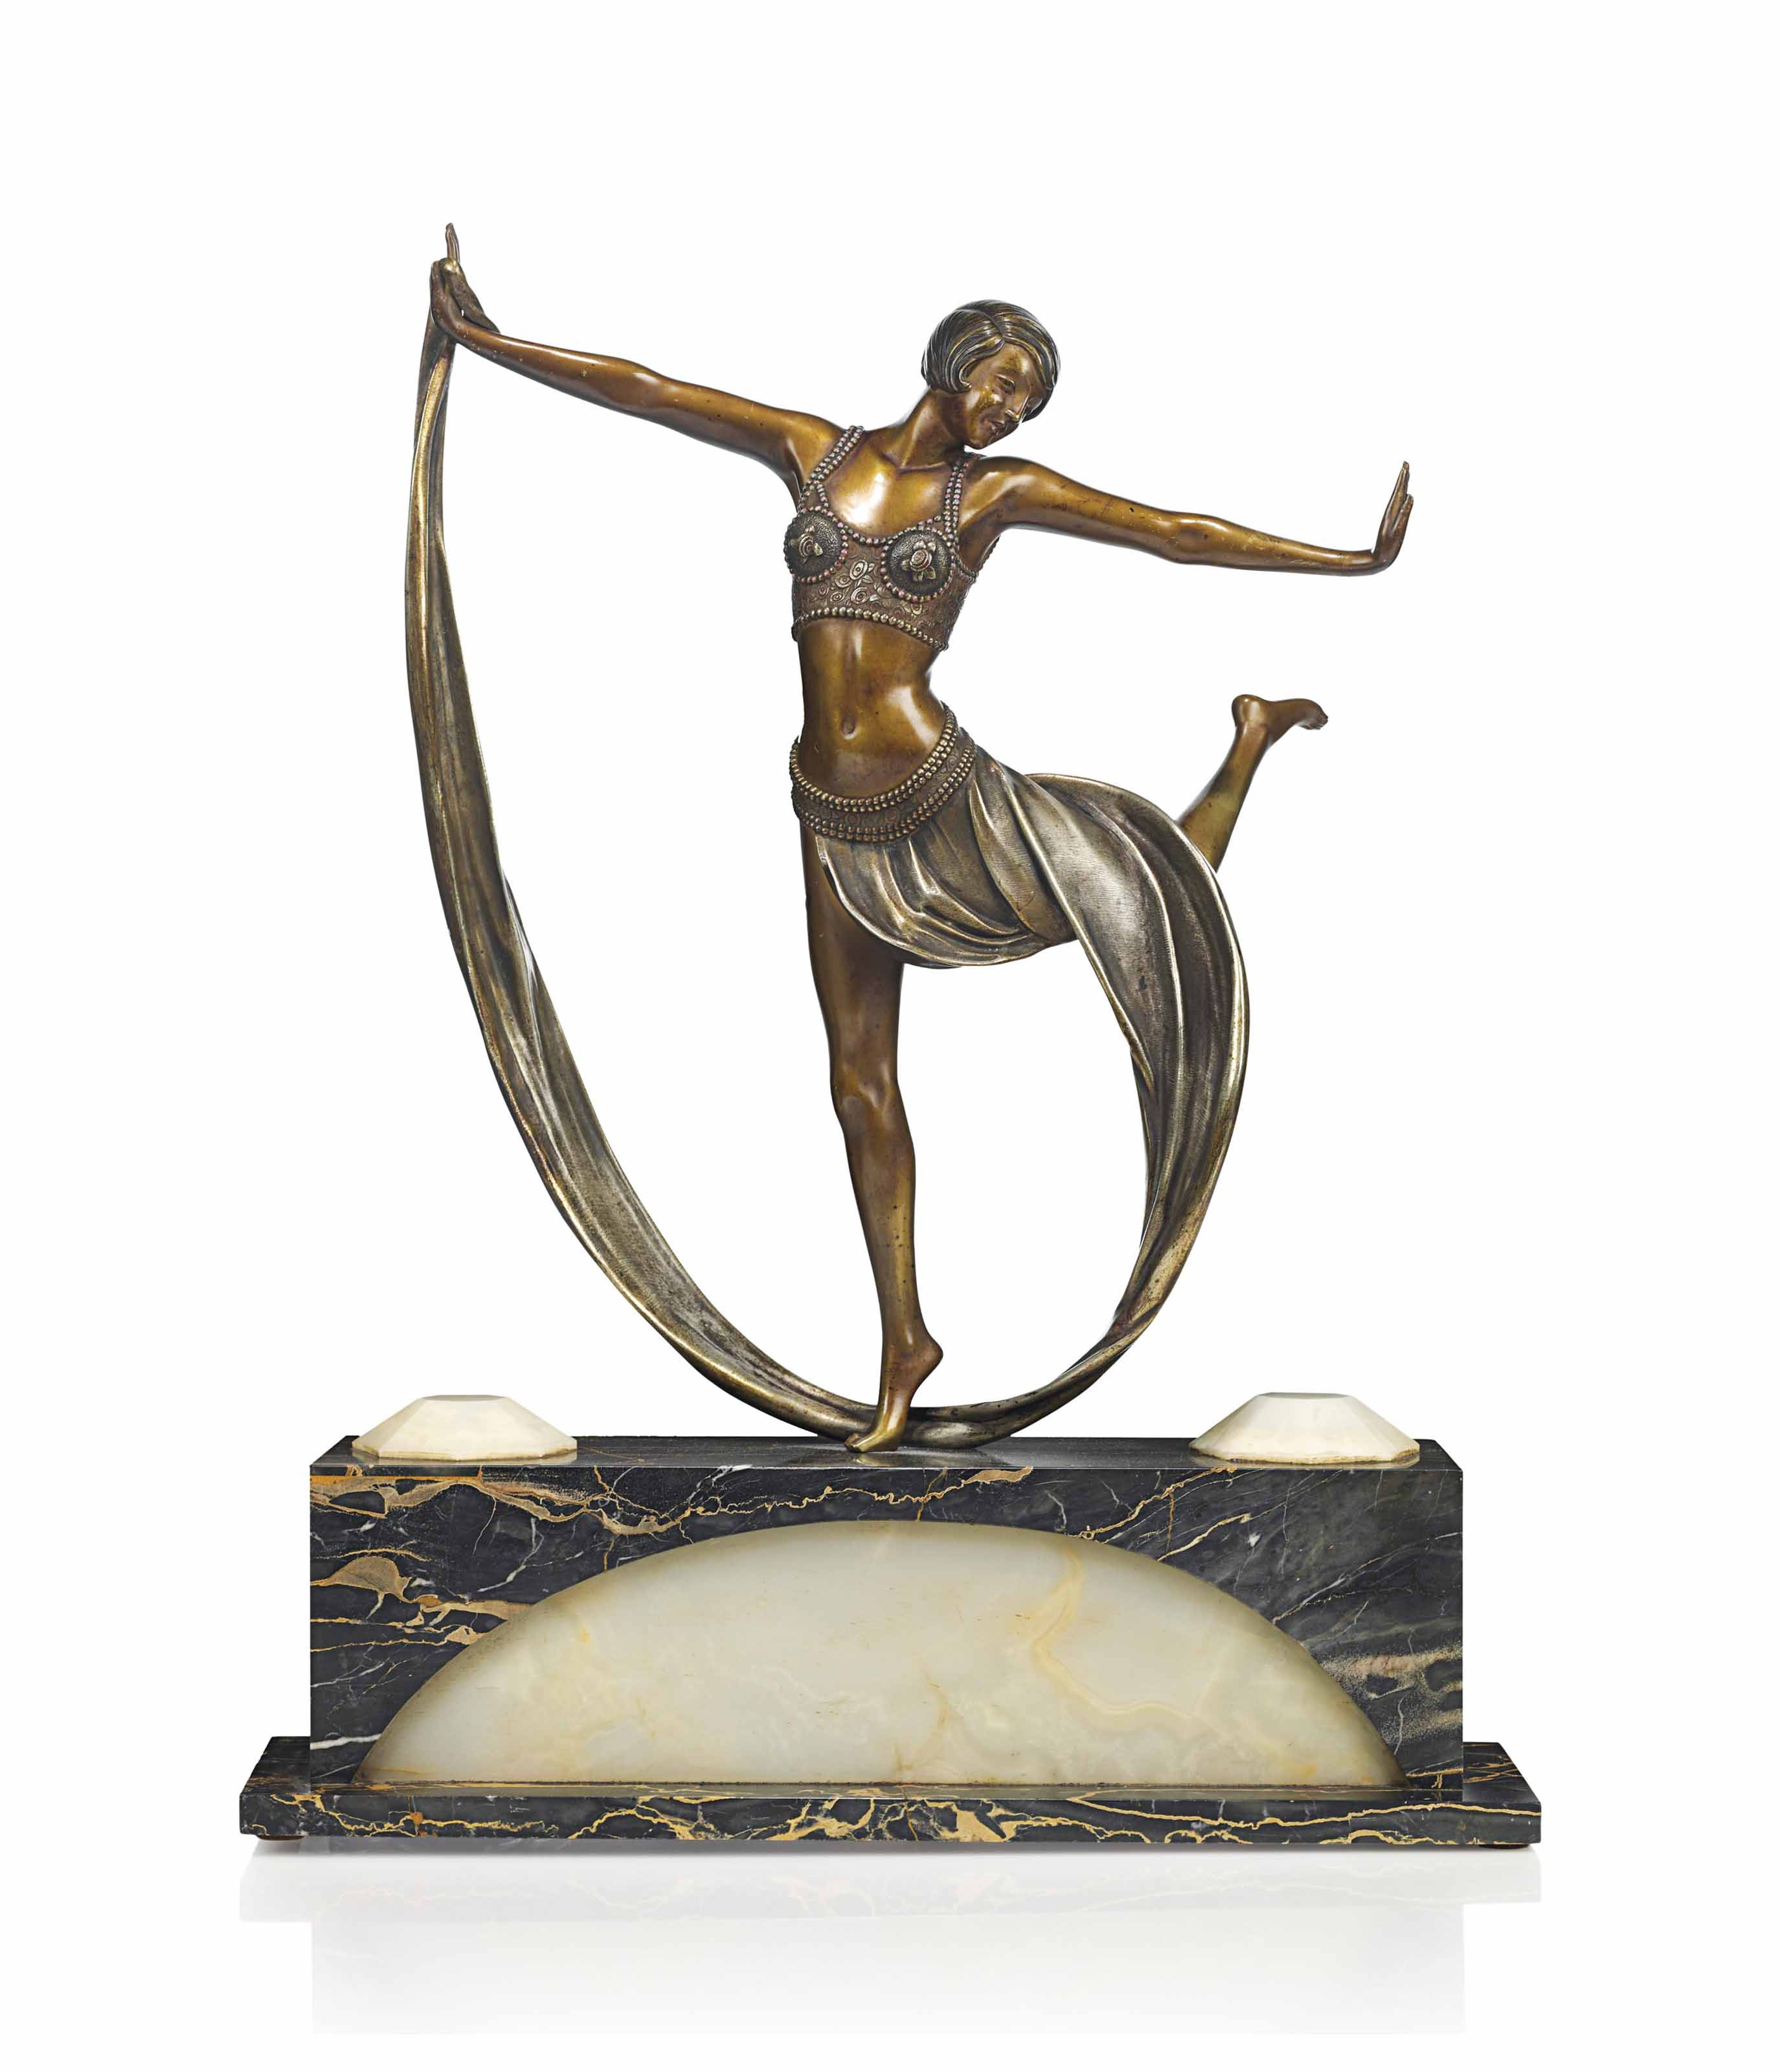 A CLAIRE JEANNE ROBERTE COLINET (1880-1950) ART DECO PATINATED AND COLD-PAINTED BRONZE FIGURE WITH ILLUMINATED BASE